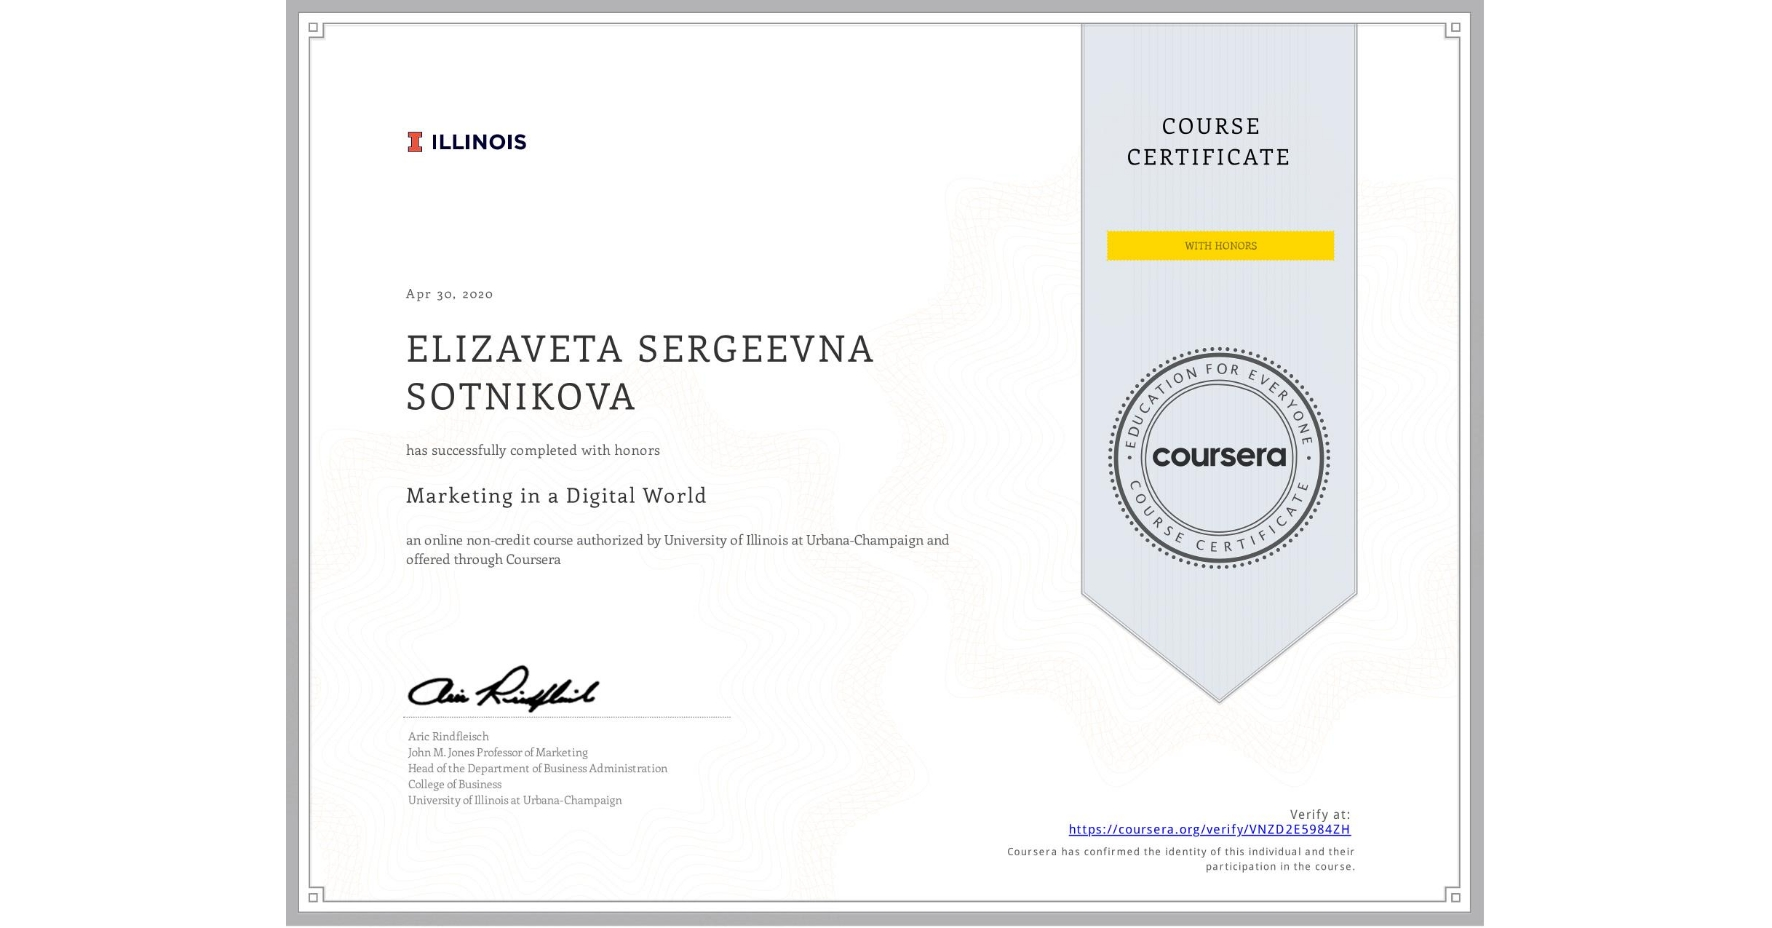 View certificate for ELIZAVETA SERGEEVNA  SOTNIKOVA, Marketing in a Digital World, an online non-credit course authorized by University of Illinois at Urbana-Champaign and offered through Coursera